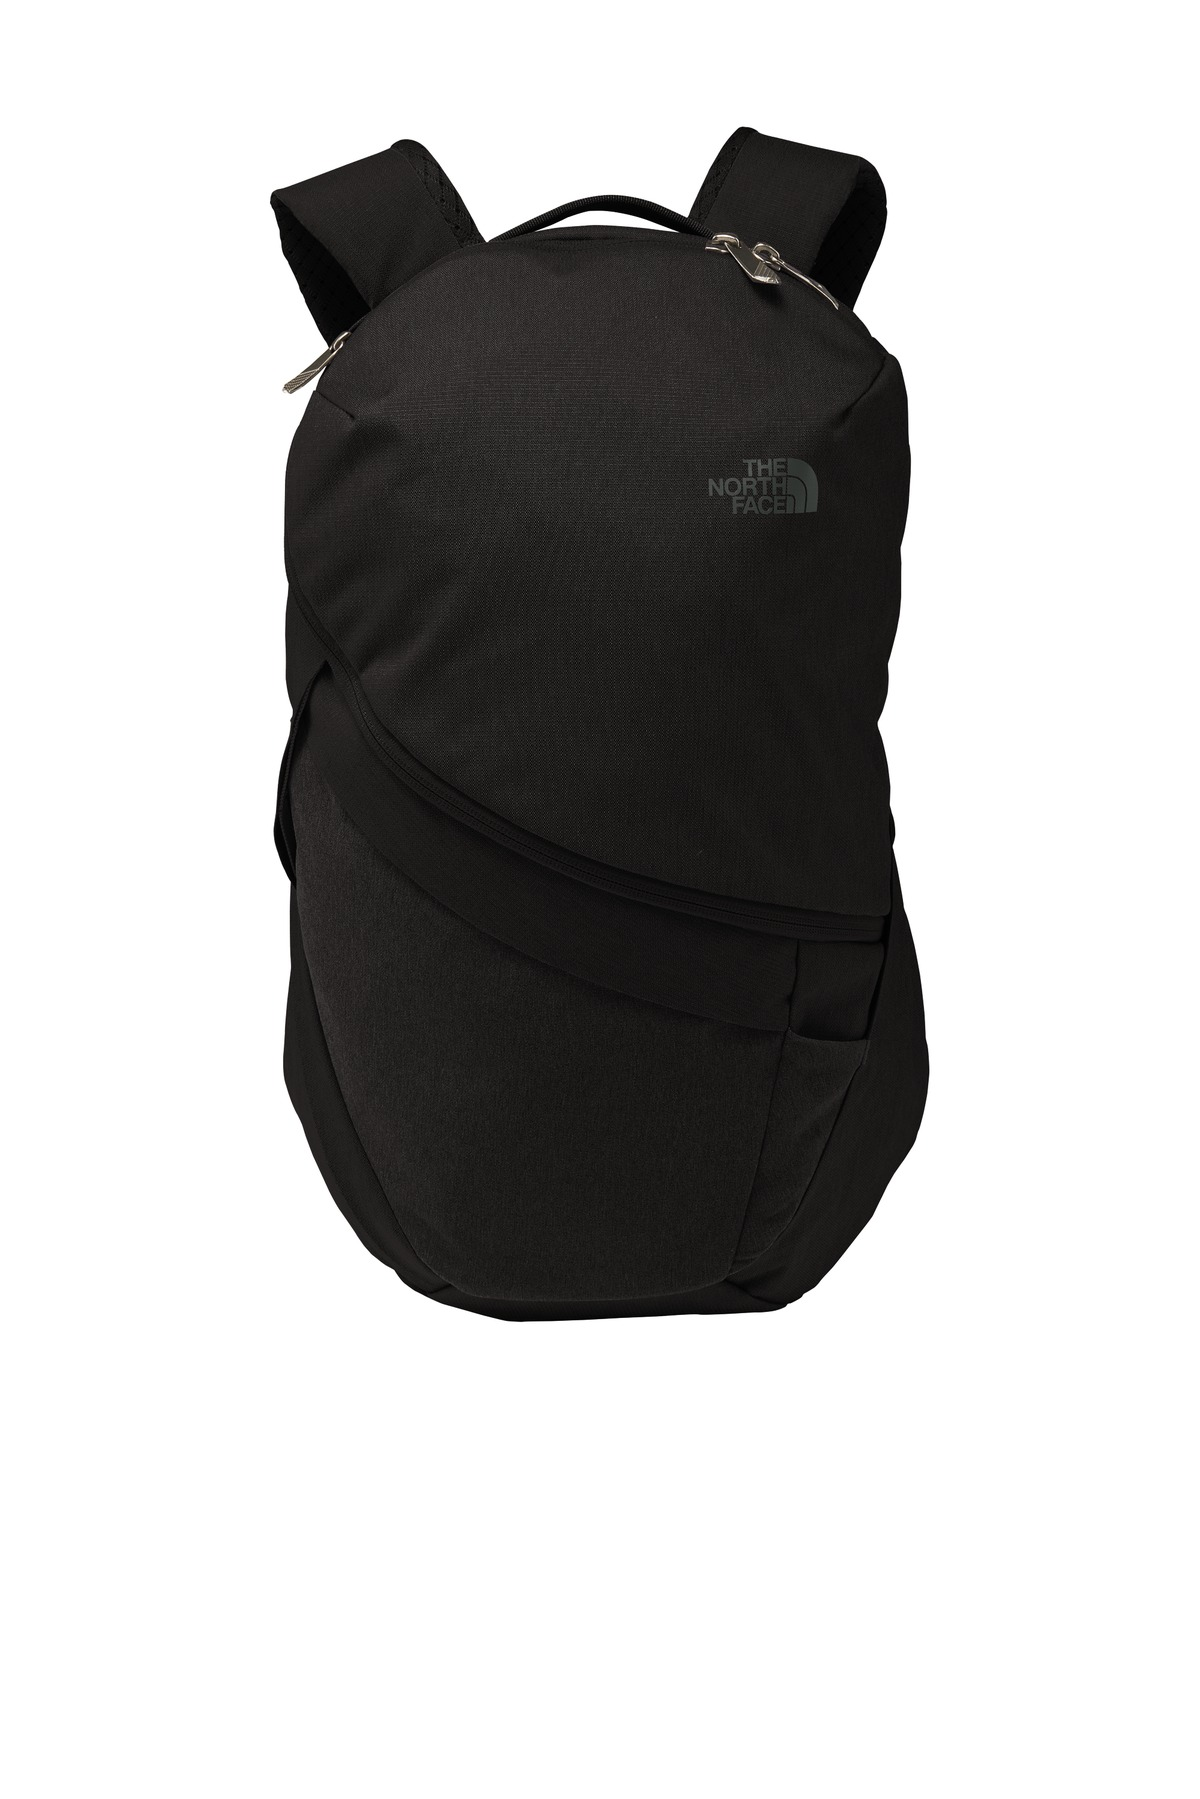 The North Face  ®  Aurora II Backpack. NF0A3KXY - TNF Black Heather